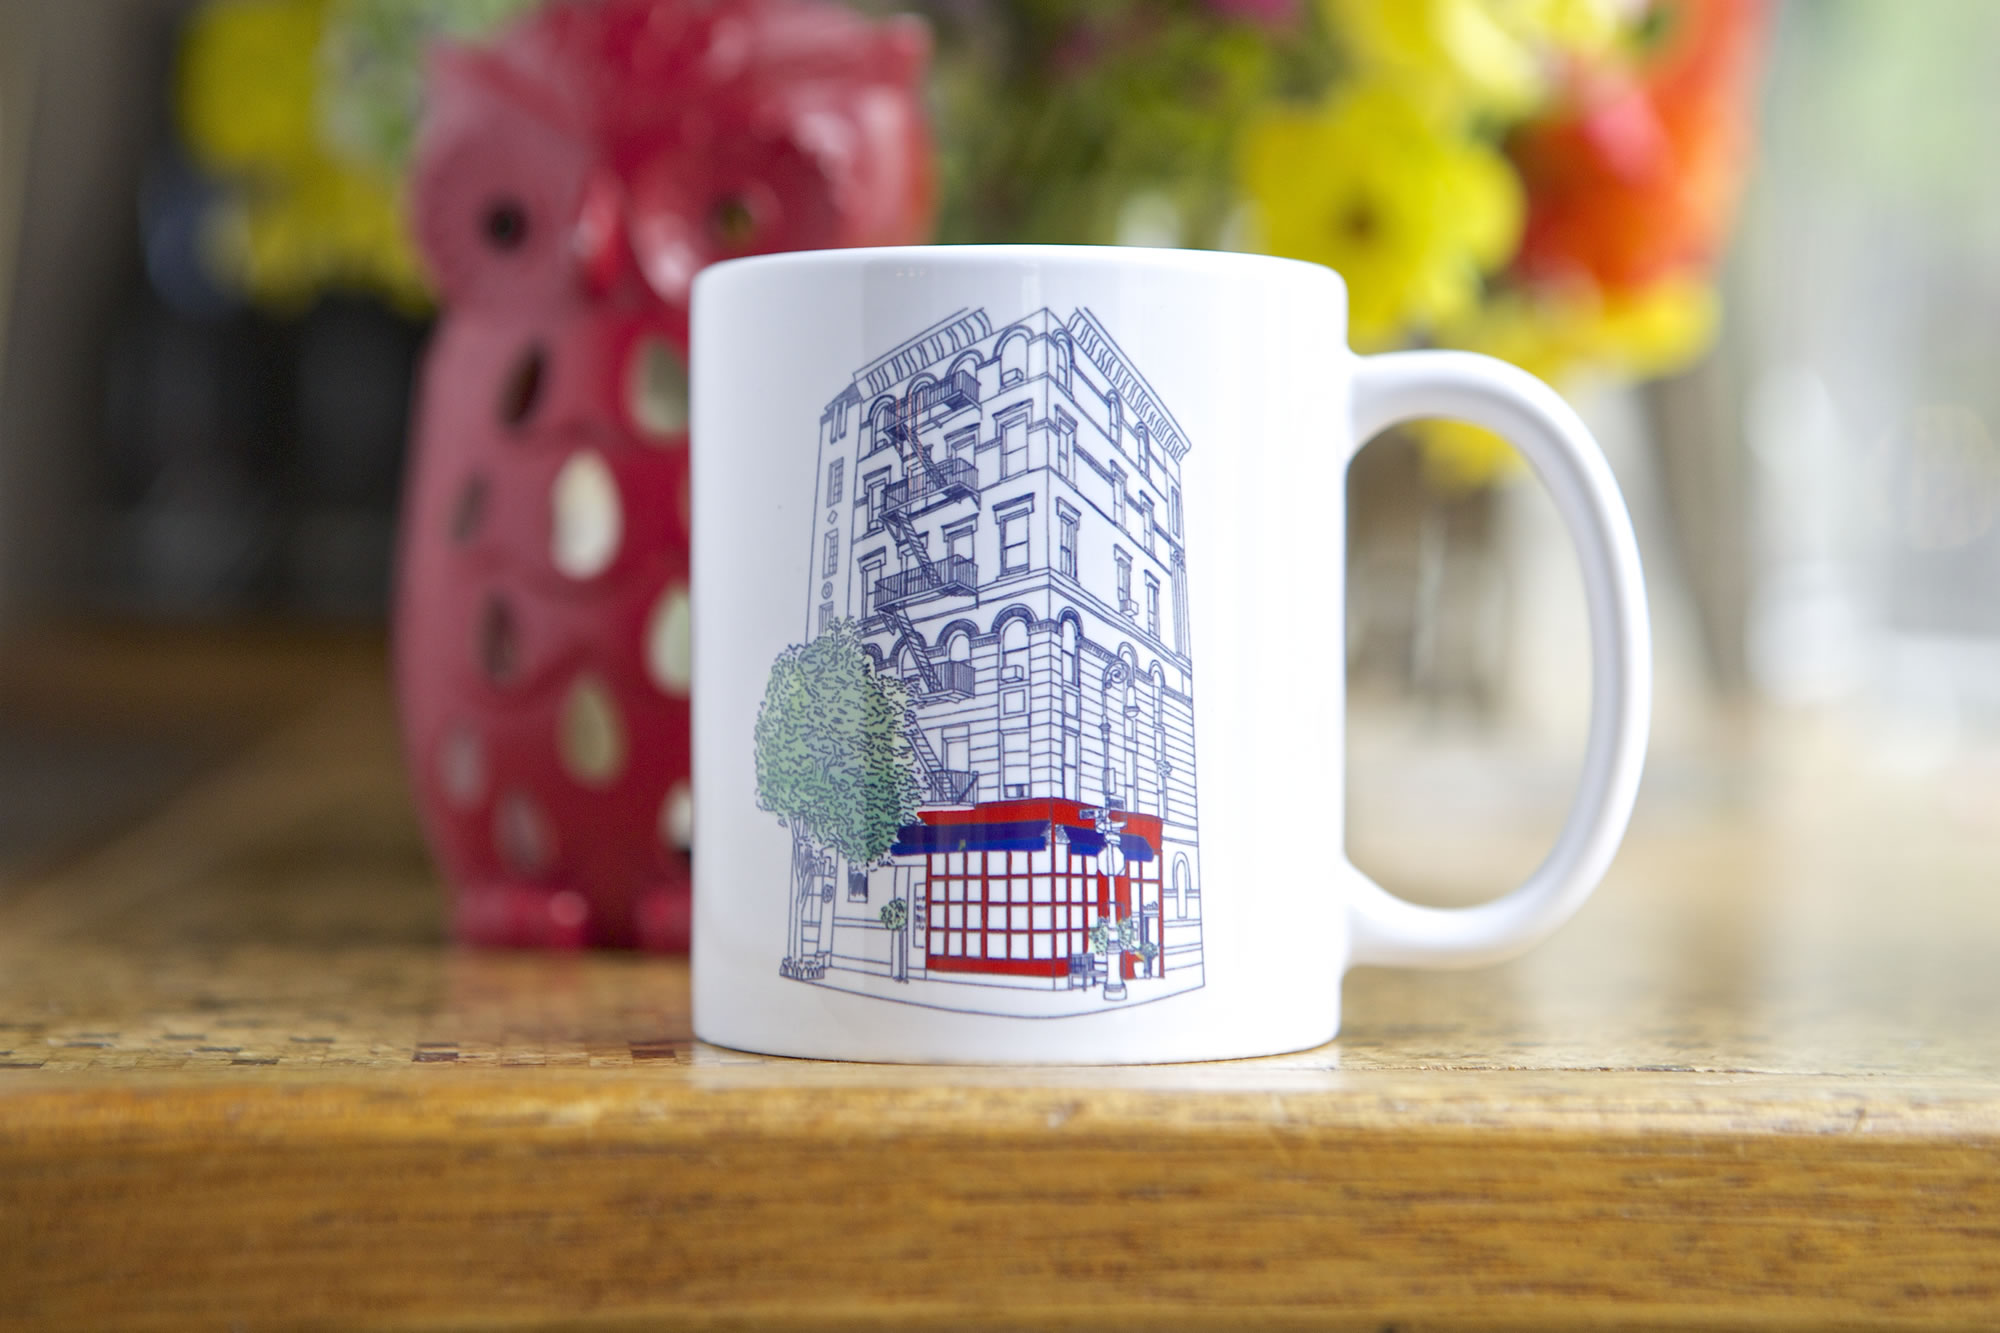 Little Owl Mug featuring a painting of 90 Bedford Street